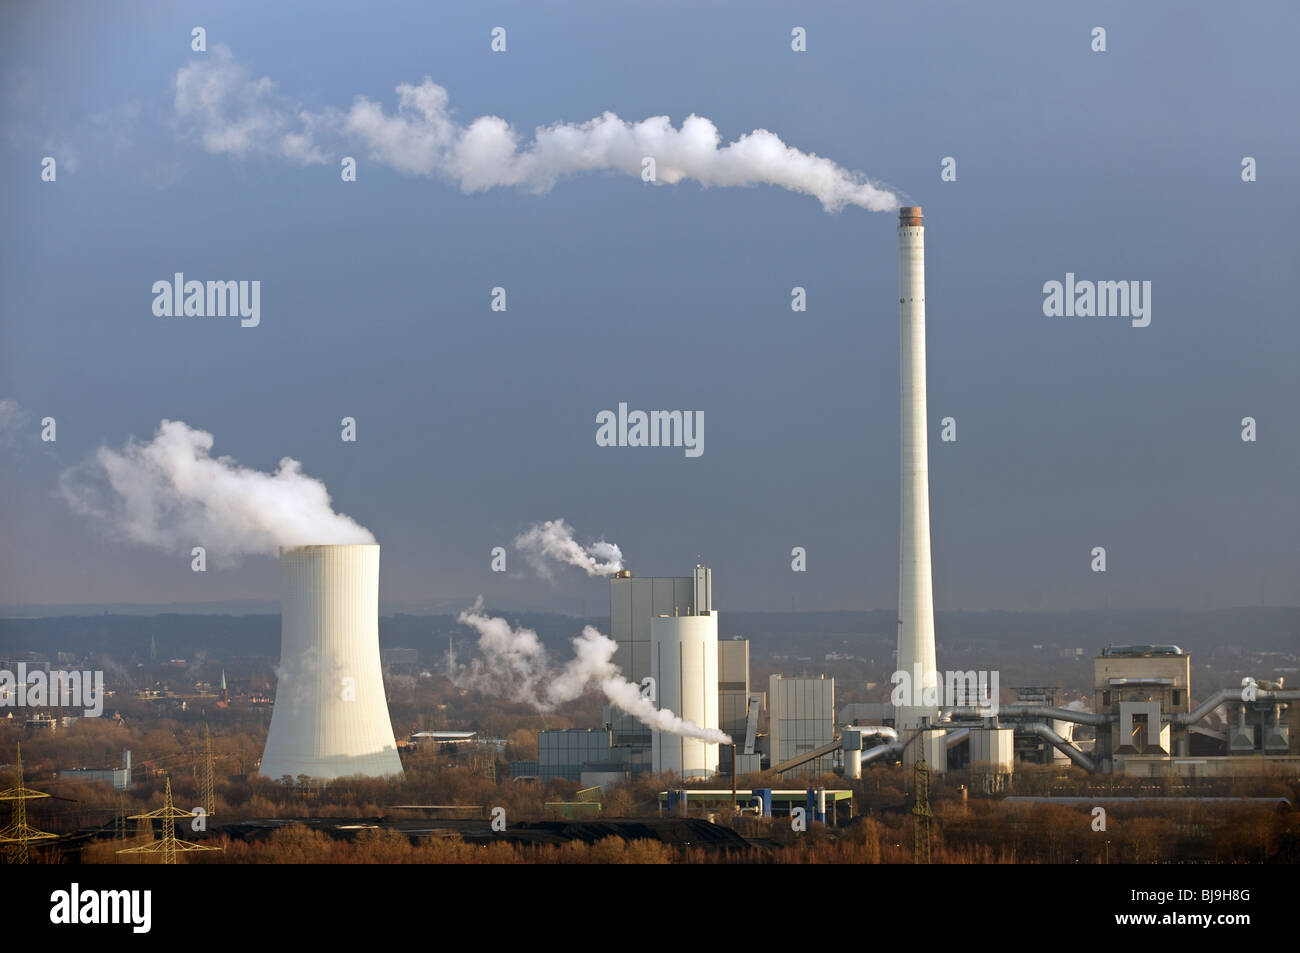 Coal fired power station, Germany. - Stock Image